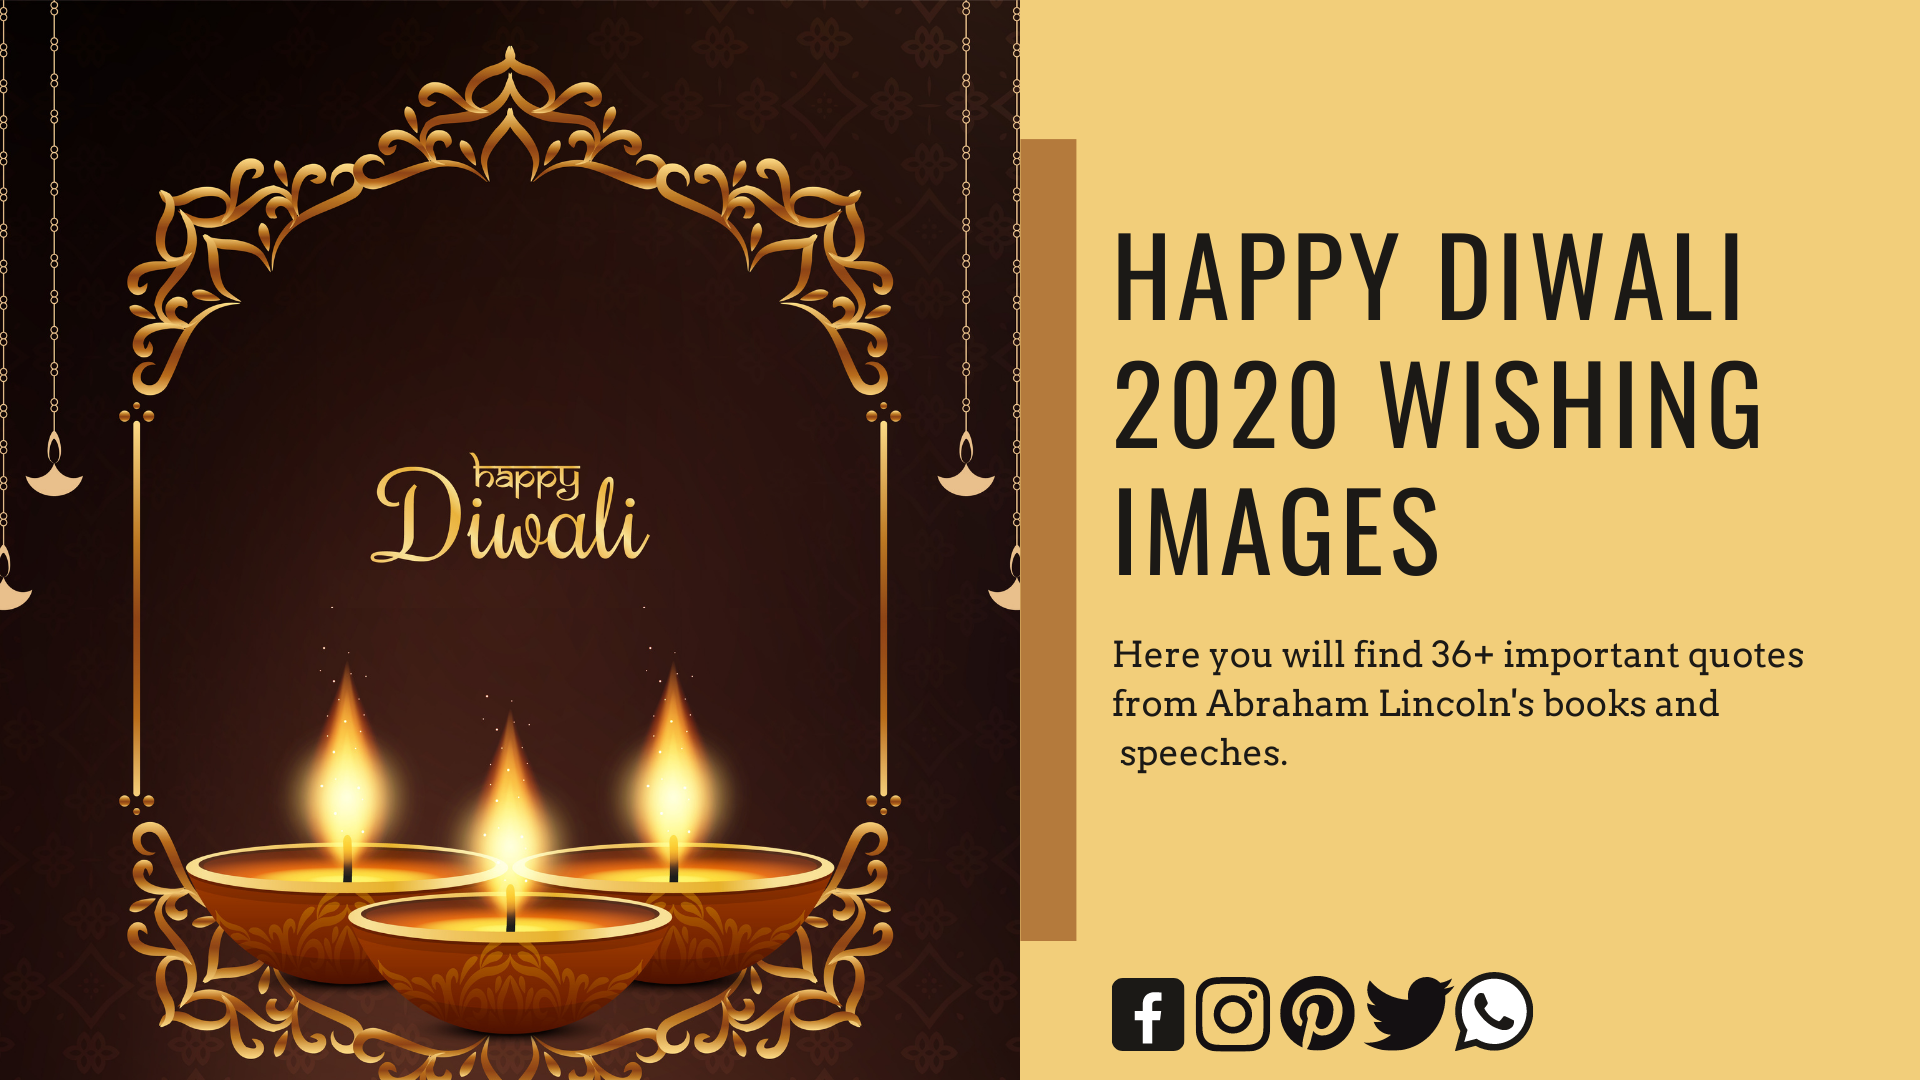 Best Happy Diwali Wishes With Images - Quotesmotiv